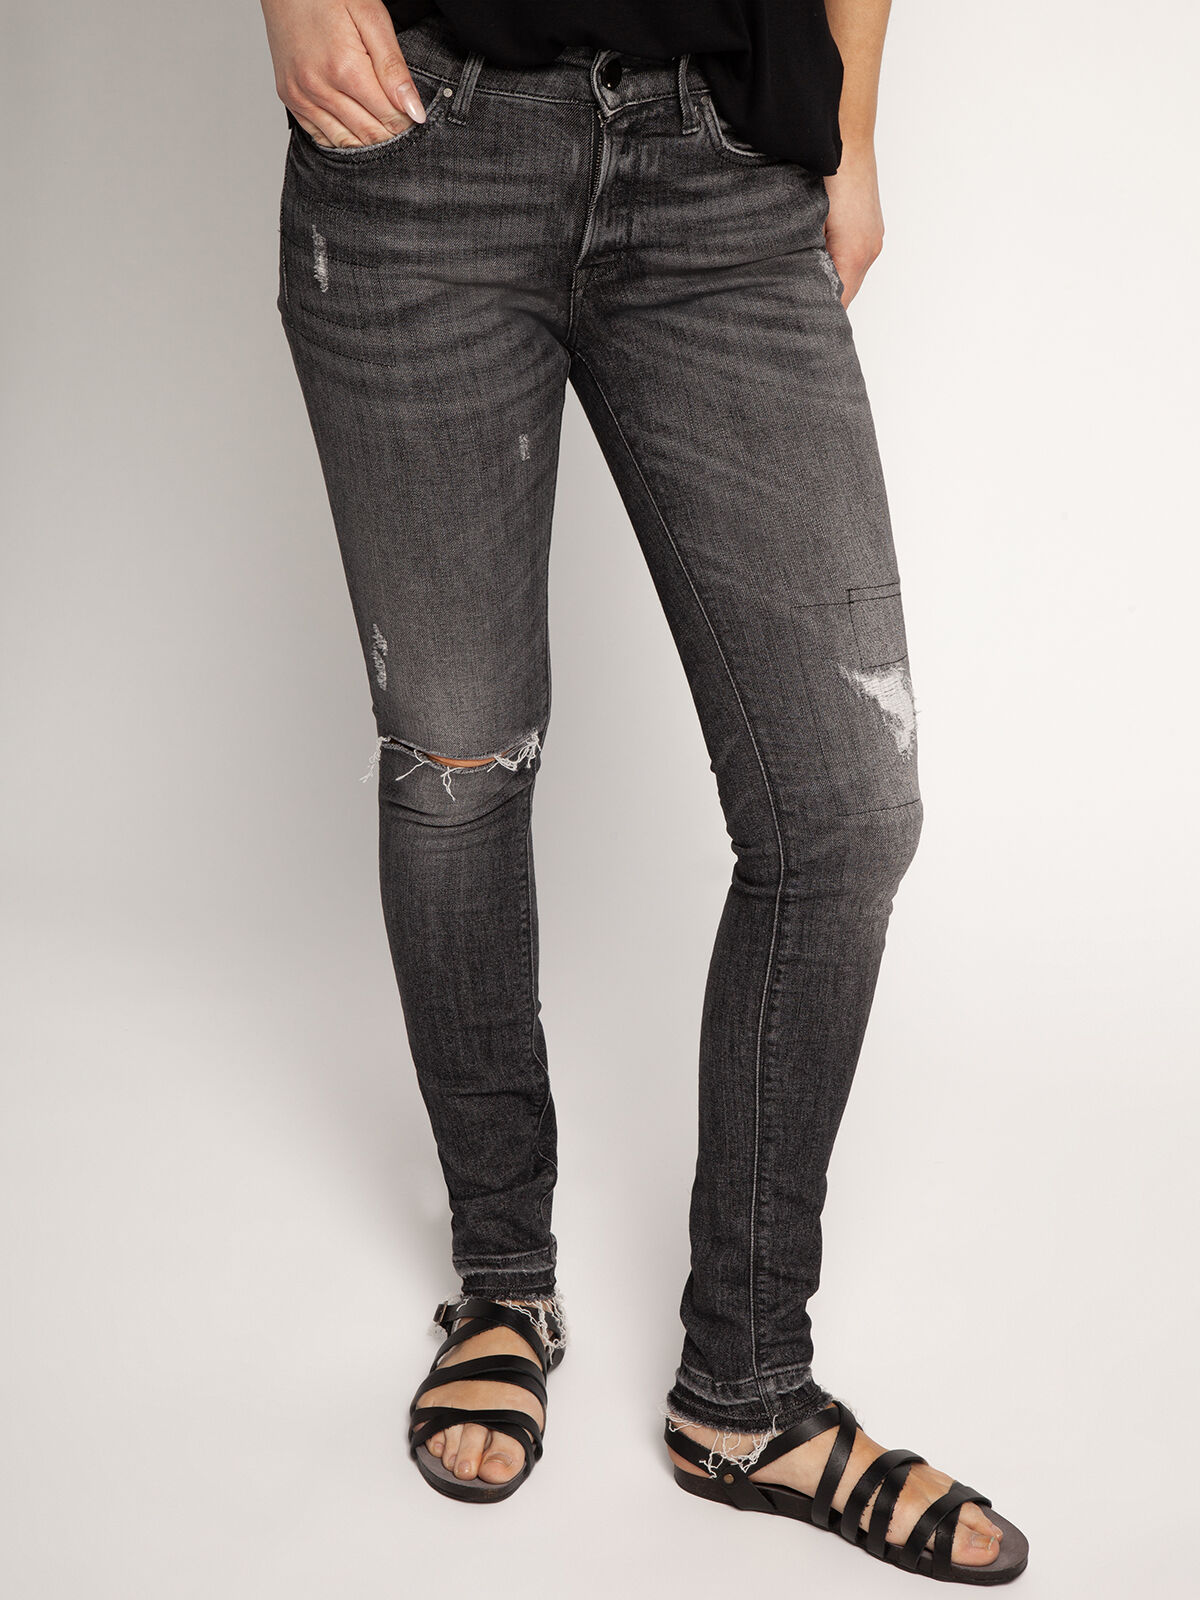 New Luz Jeans